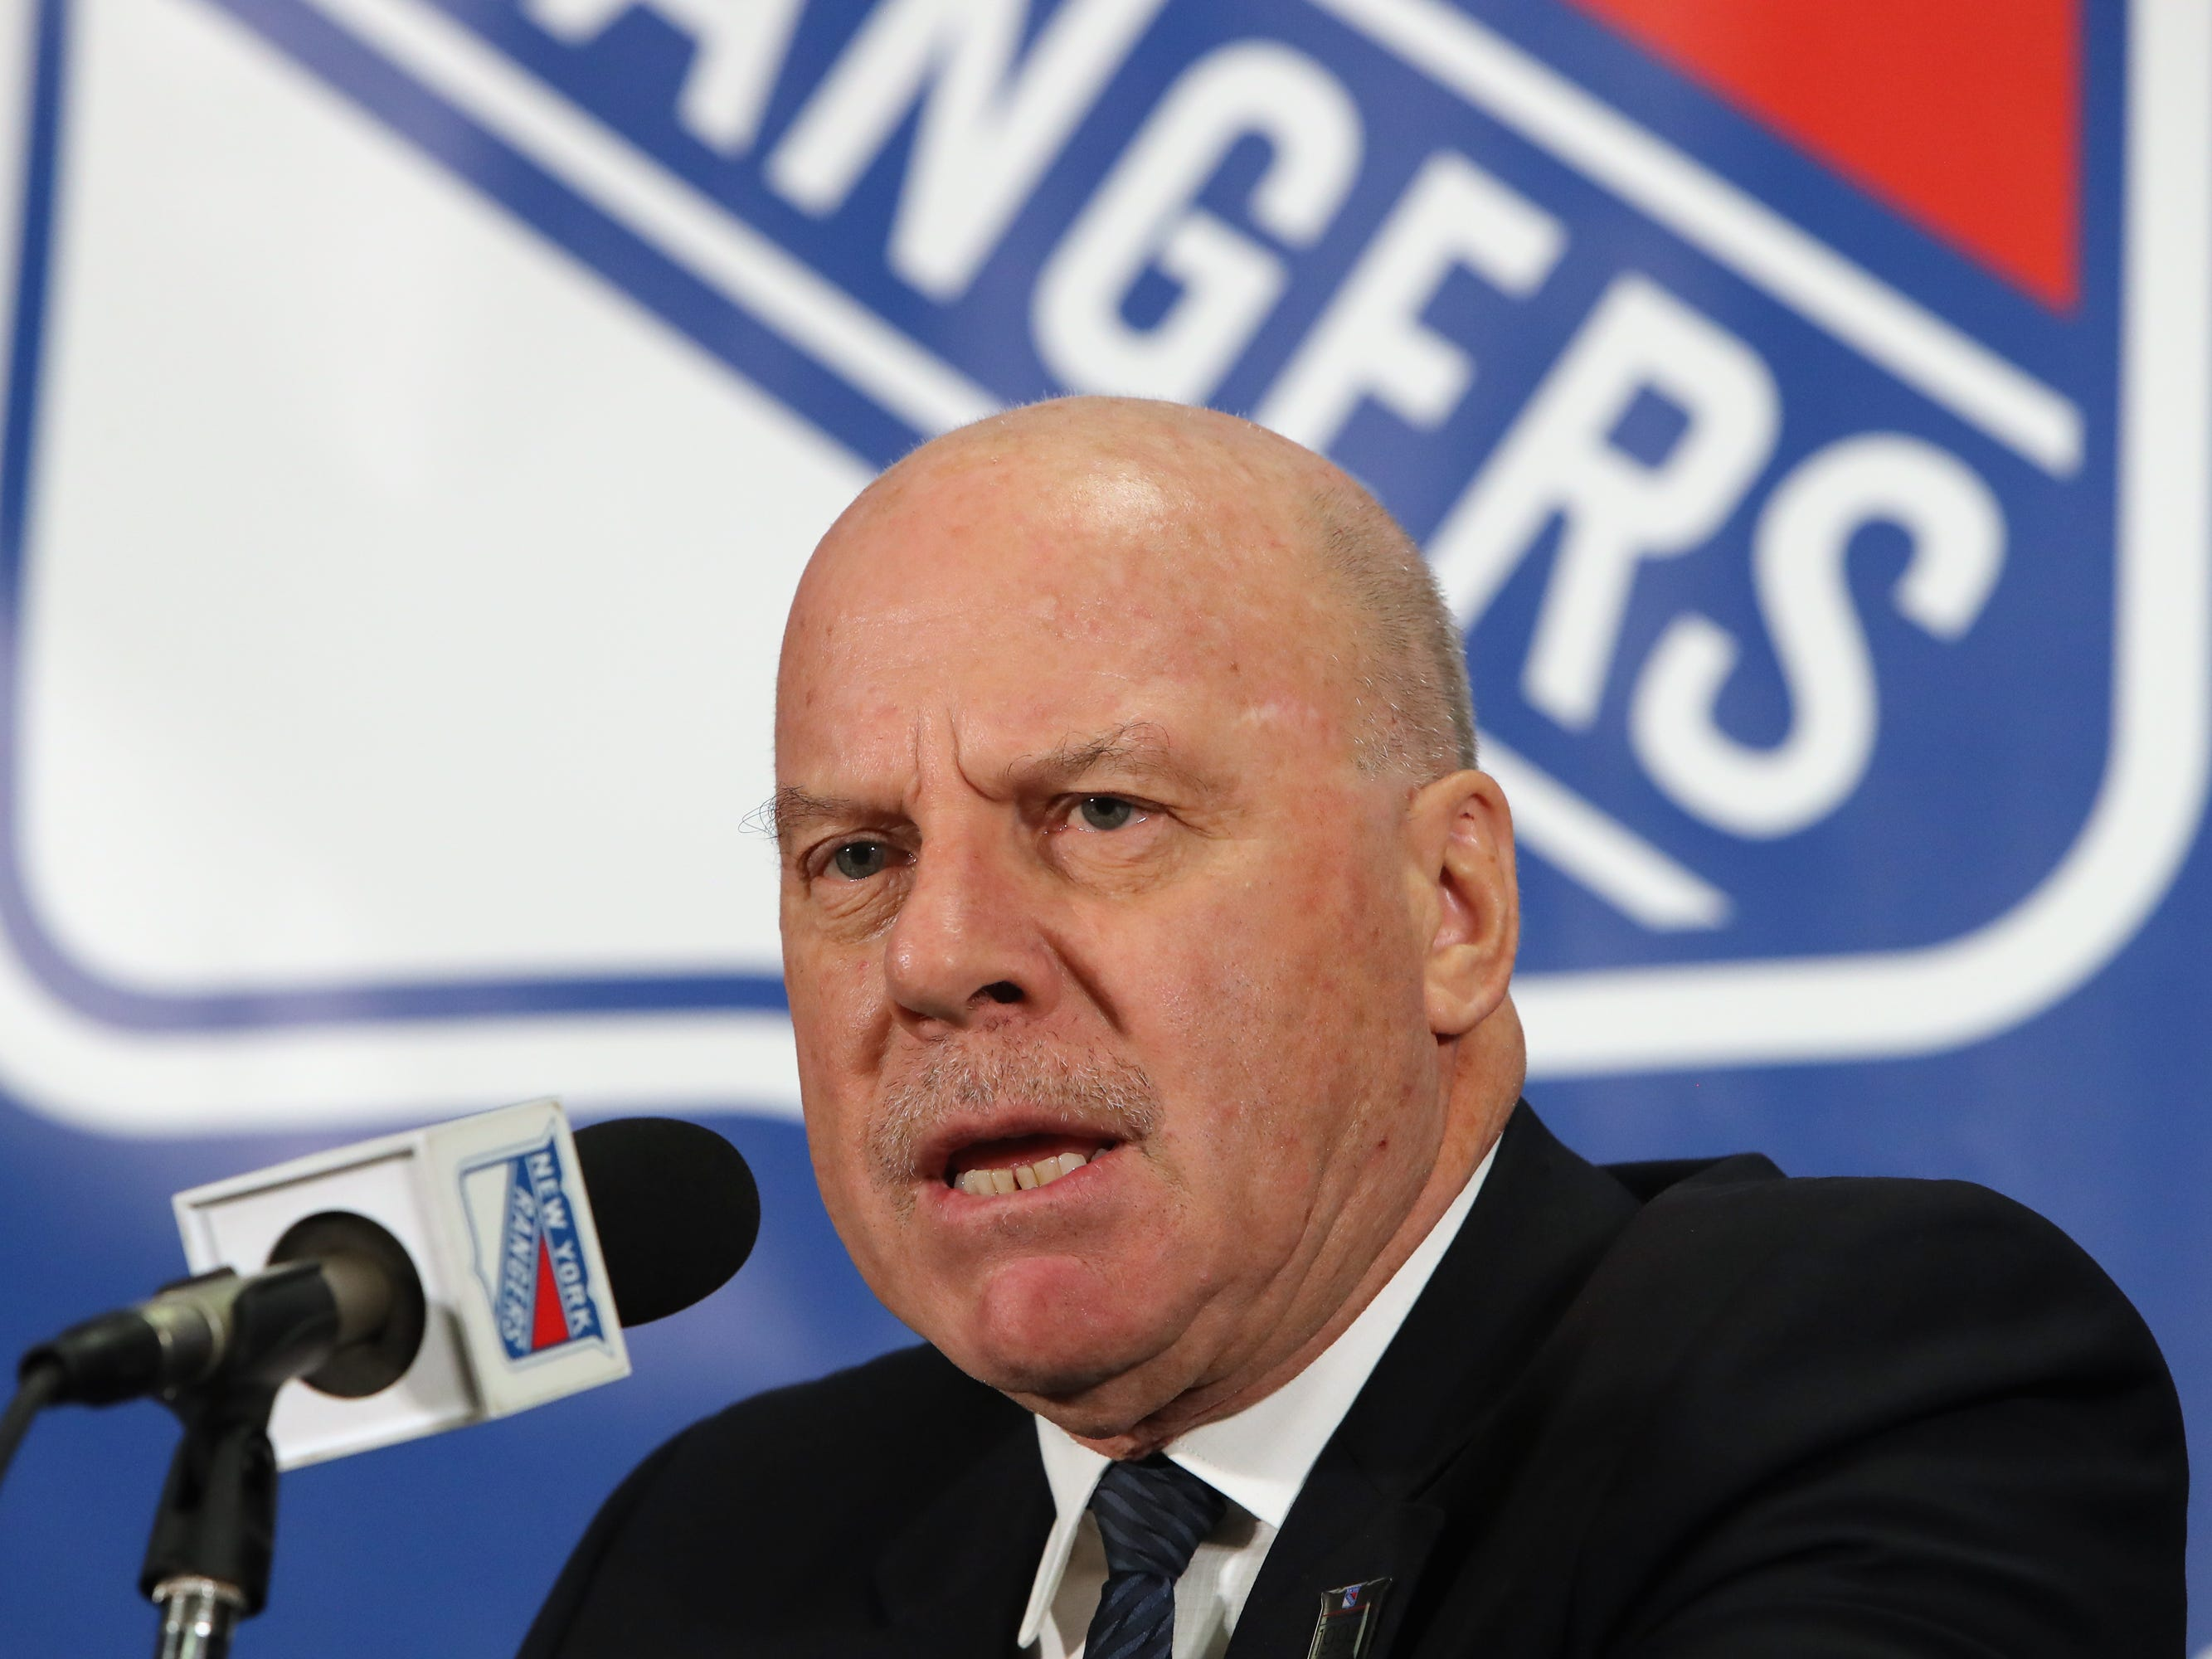 NEW YORK, NEW YORK - FEBRUARY 08: Former New York Ranger  head coach Mike Keenan meets with the media prior to the Rangers game against the Carolina Hurricanes at Madison Square Garden on February 08, 2019 in New York City. The Rangers were celebrating the 25th anniversary of their Stanley Cup win in 1994.